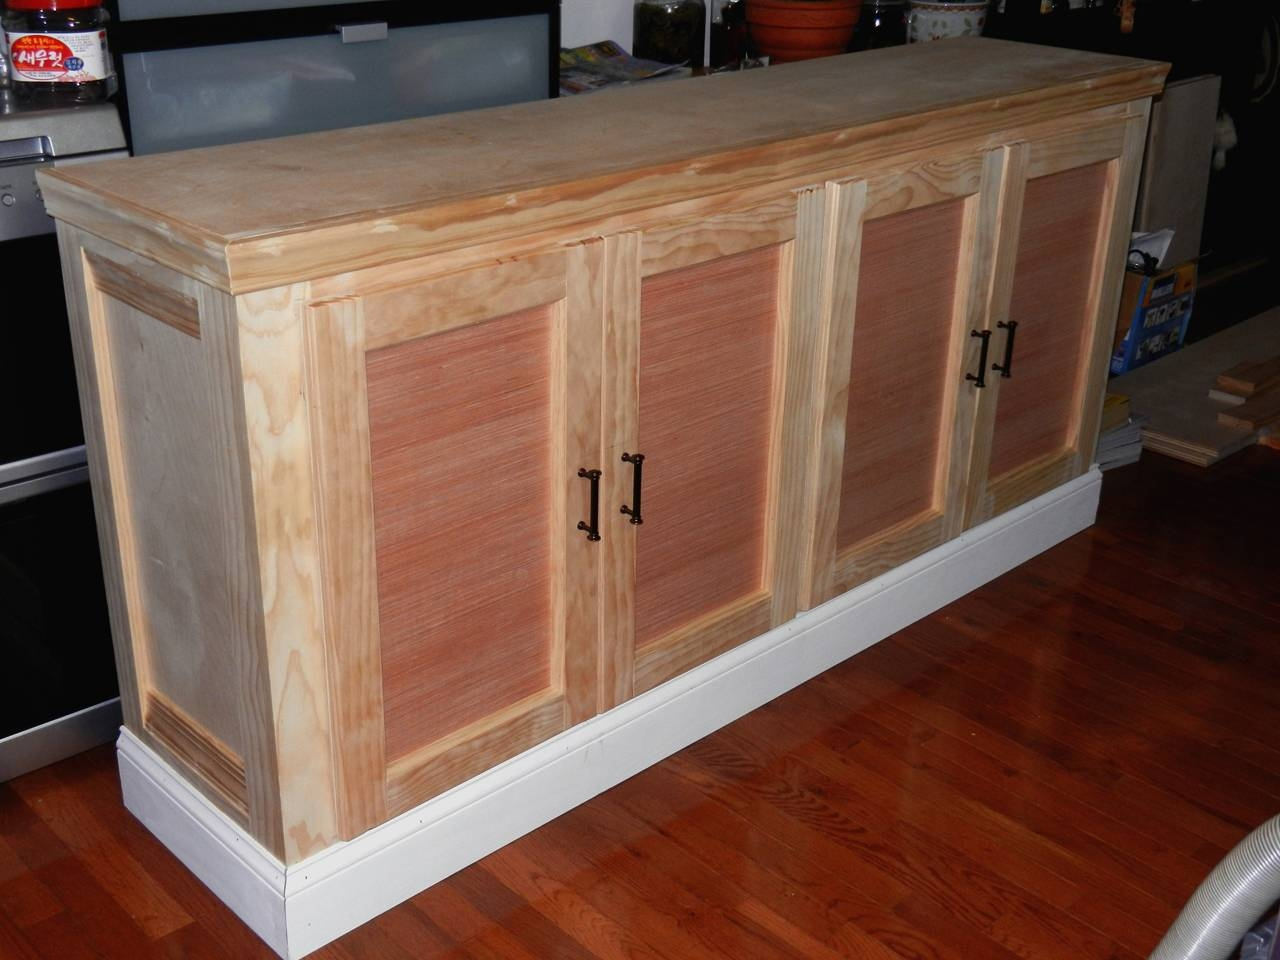 Ana White | Shanty Sideboard And Hutch - First Build - Diy Projects intended for Unfinished Sideboards (Image 1 of 30)